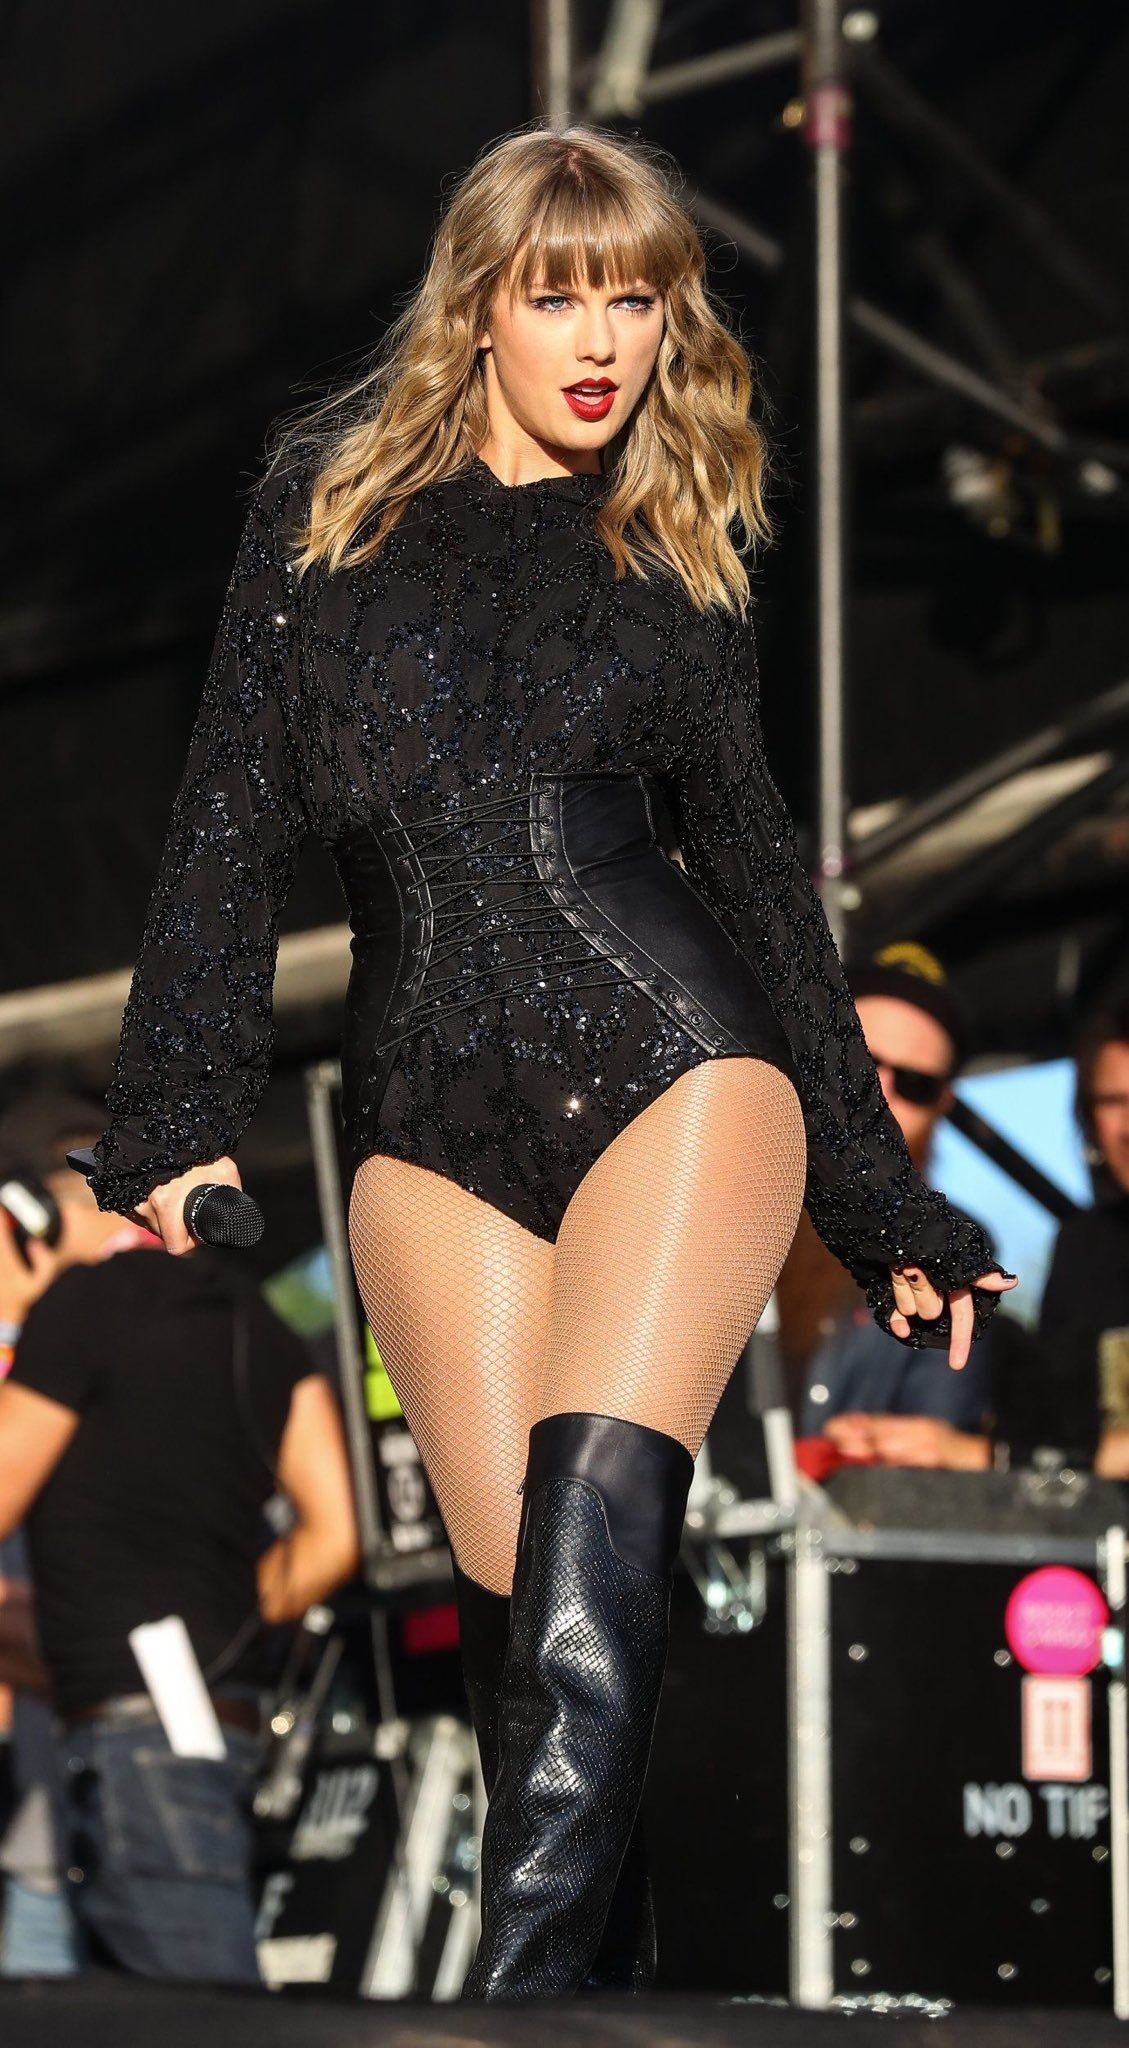 Taylor Swift Sexy Outfit With Sheer Nude Pantyhose And -7665